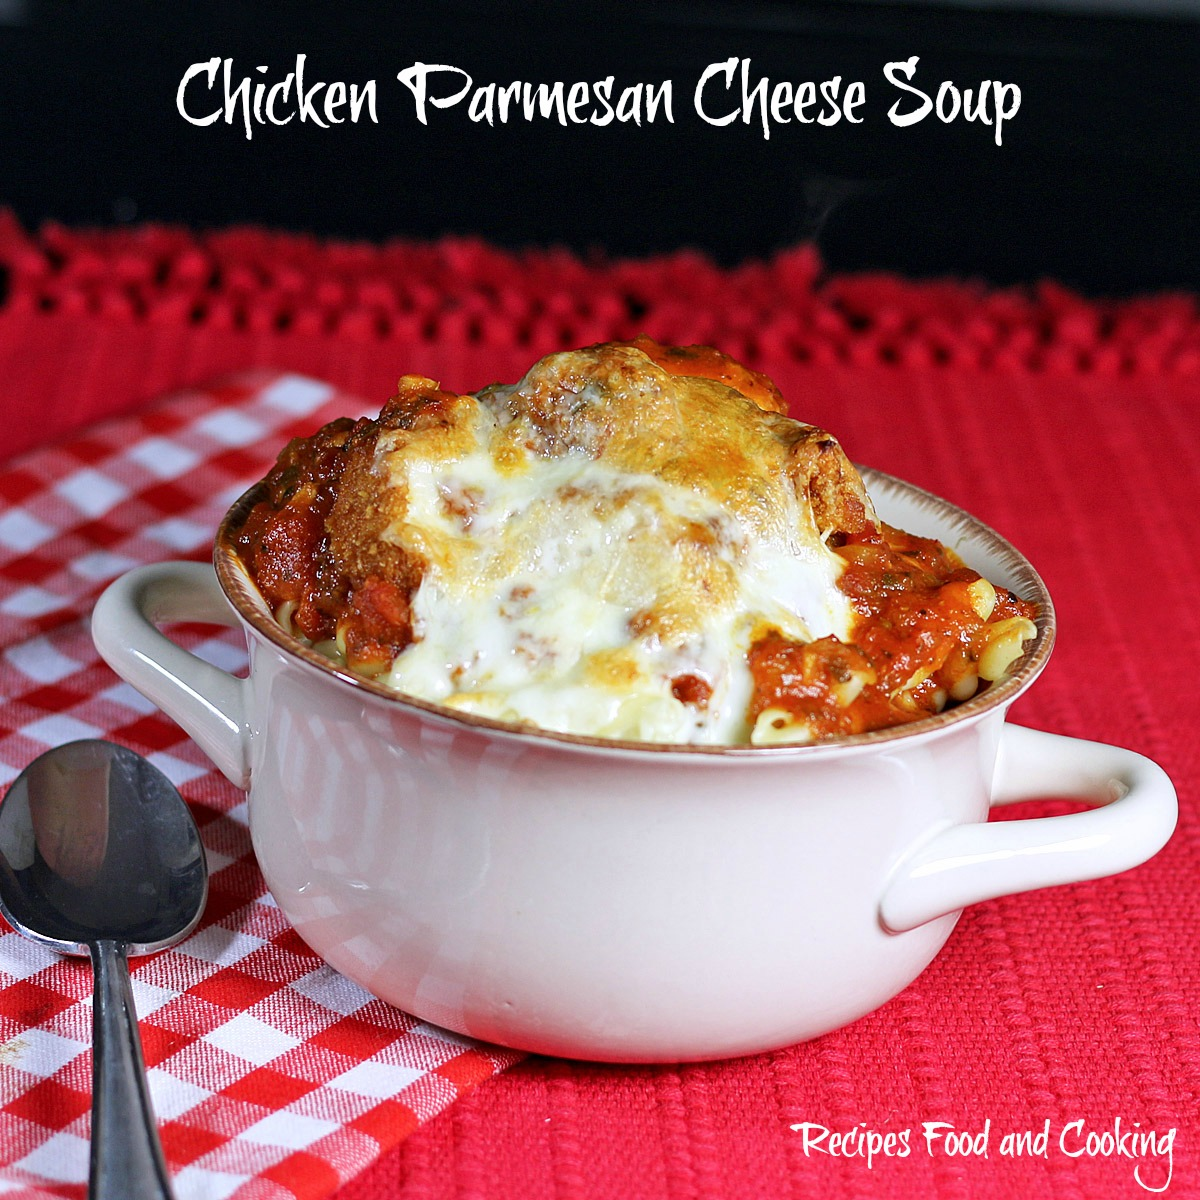 Chicken Parmesan Cheese Soup